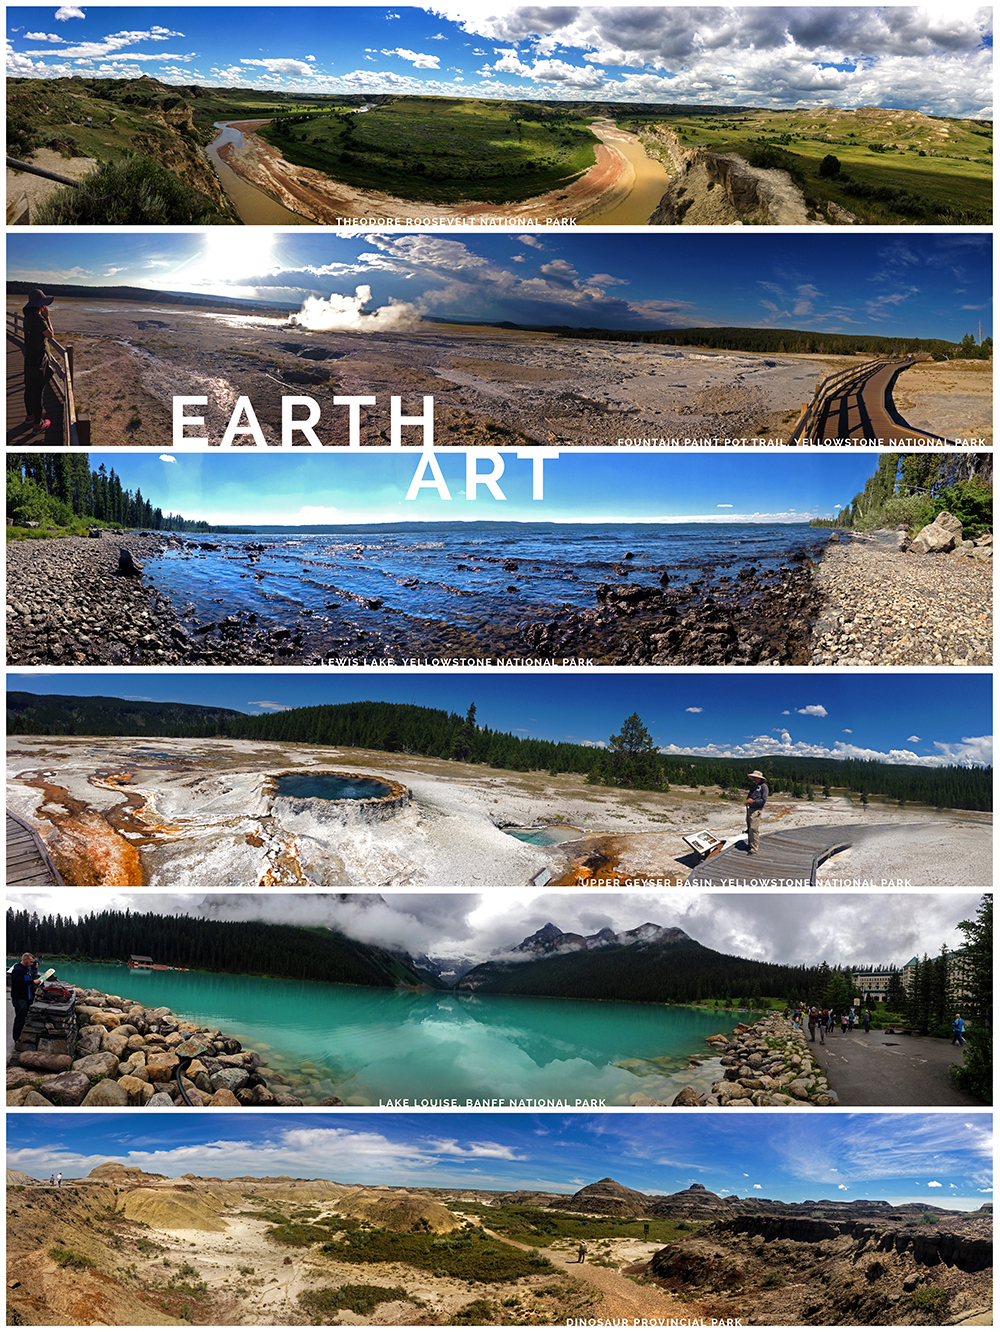 American Southwest 2016 Panorama Poster_09_01